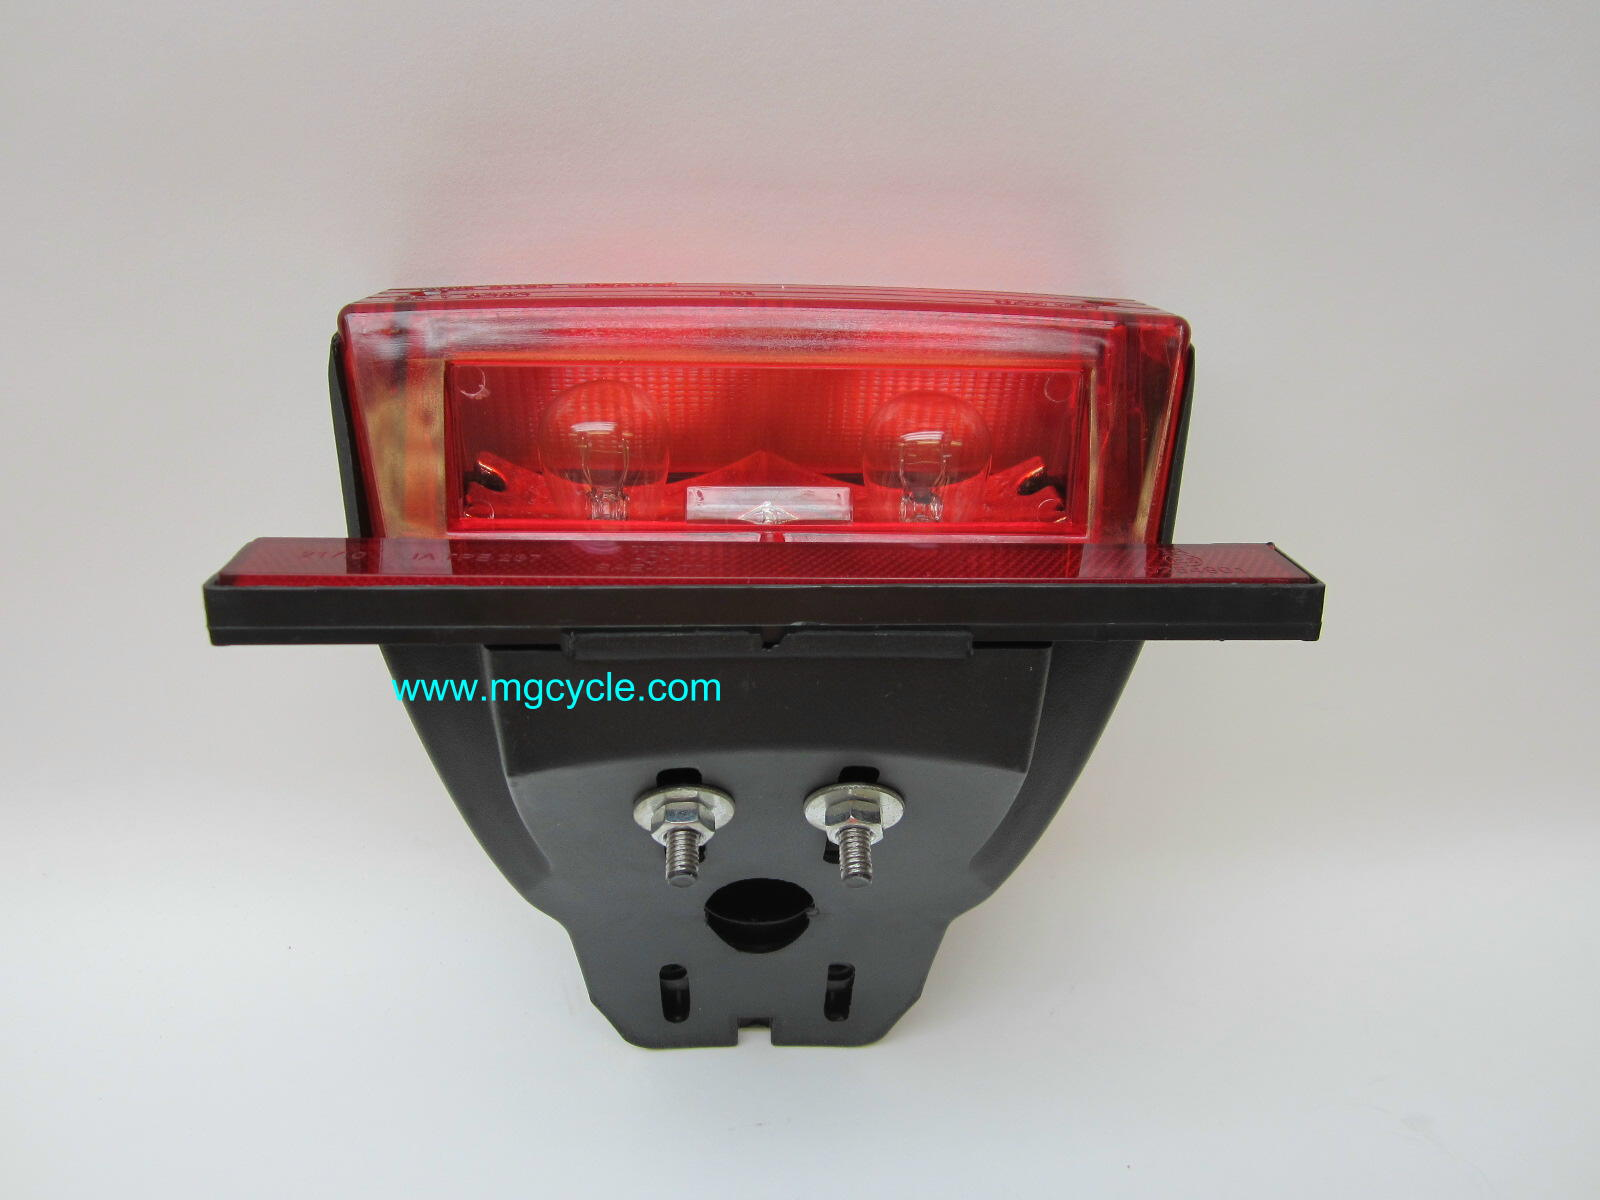 tail light complete, many models late 70s early 80s